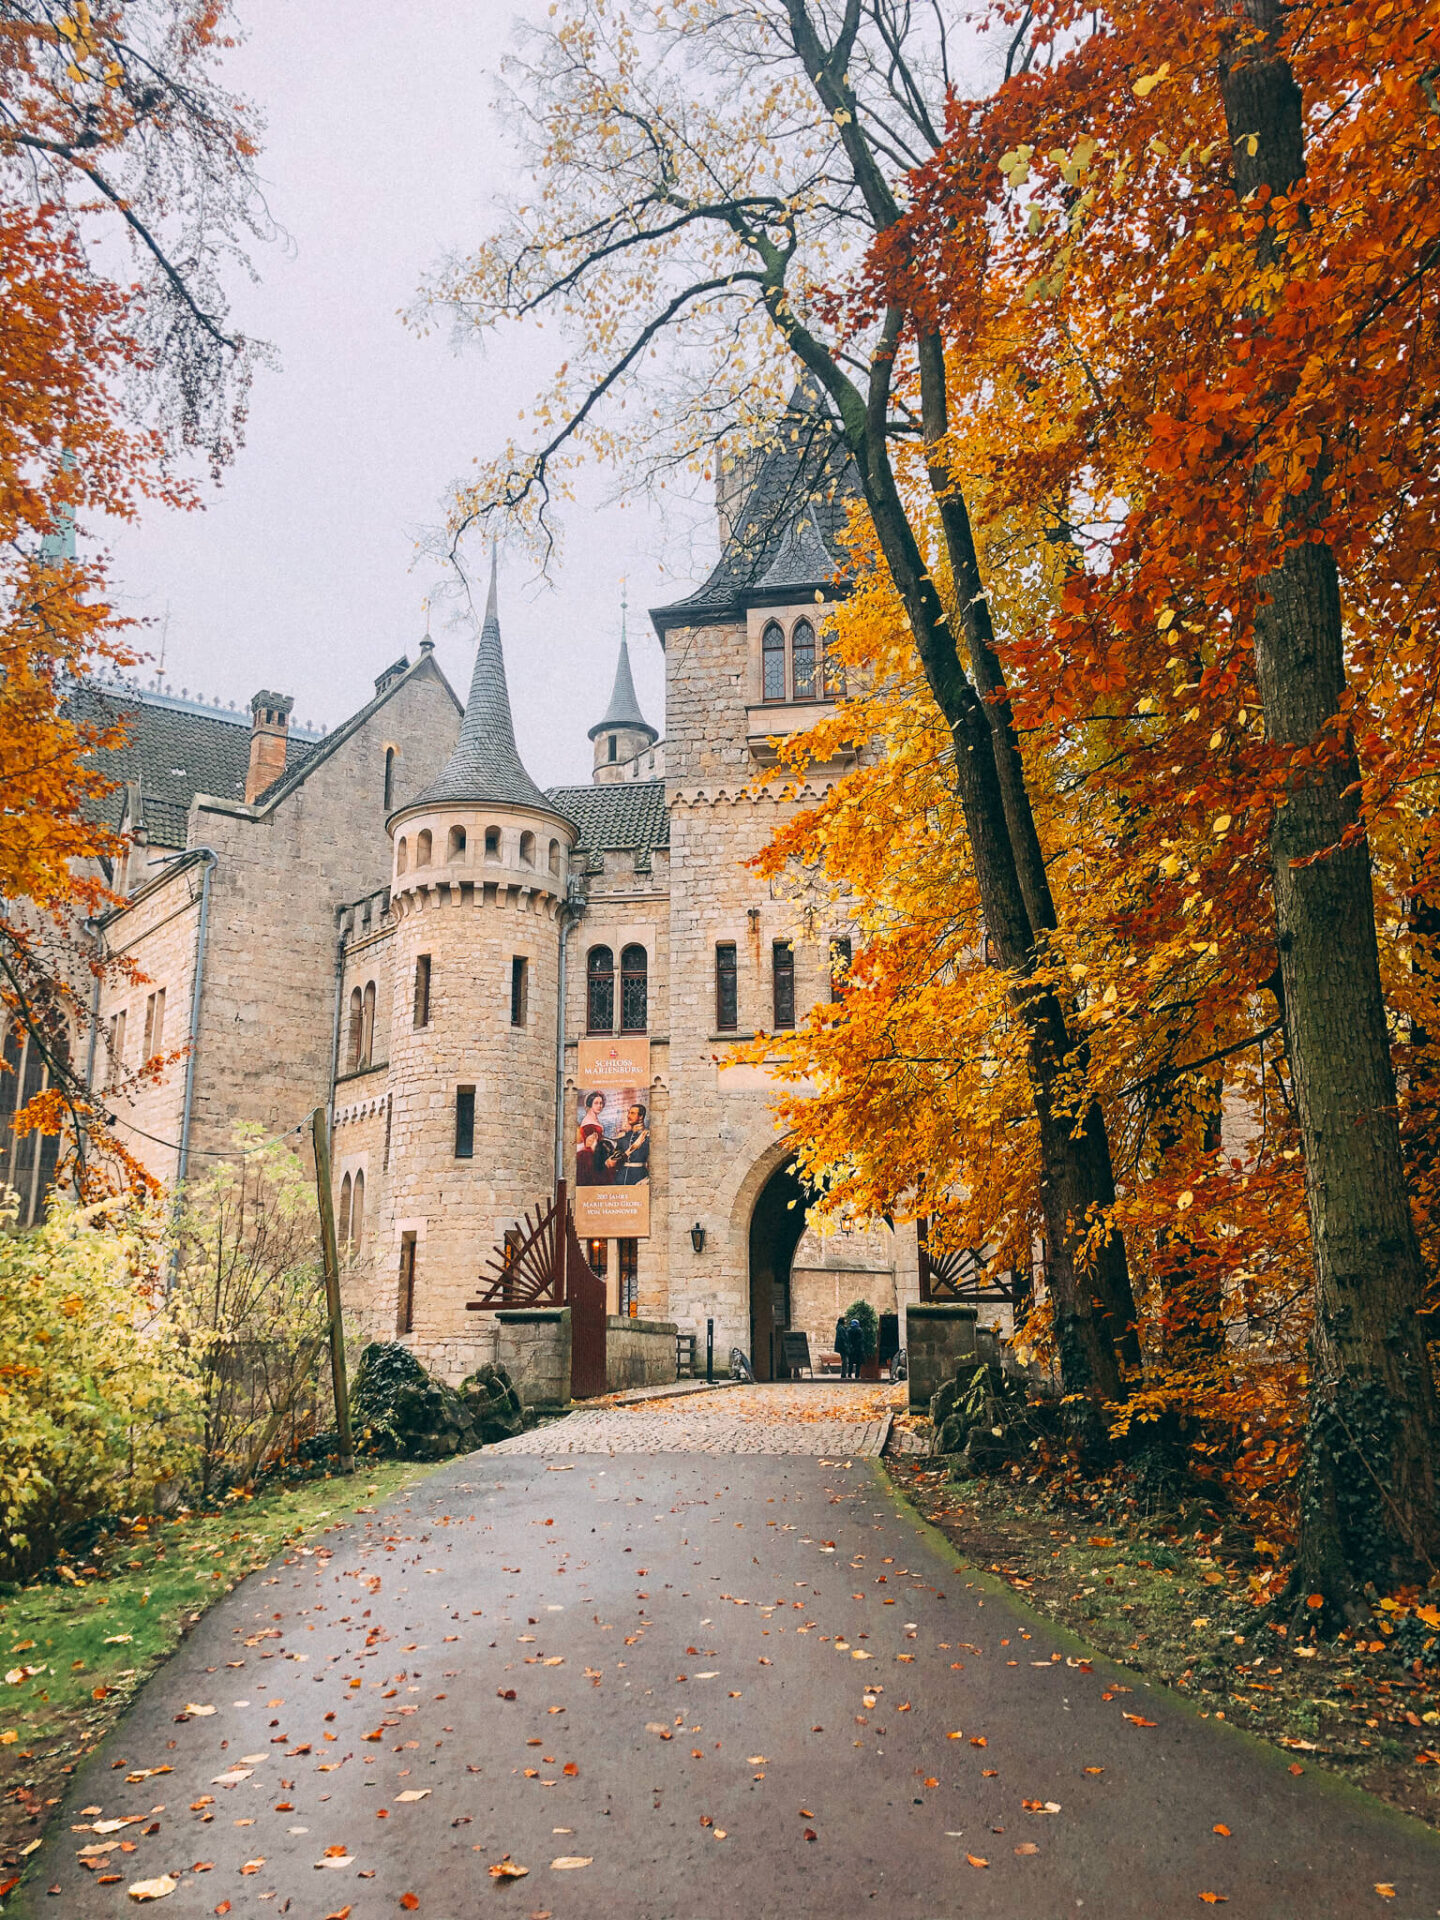 Castle surrounded by autumn leaves